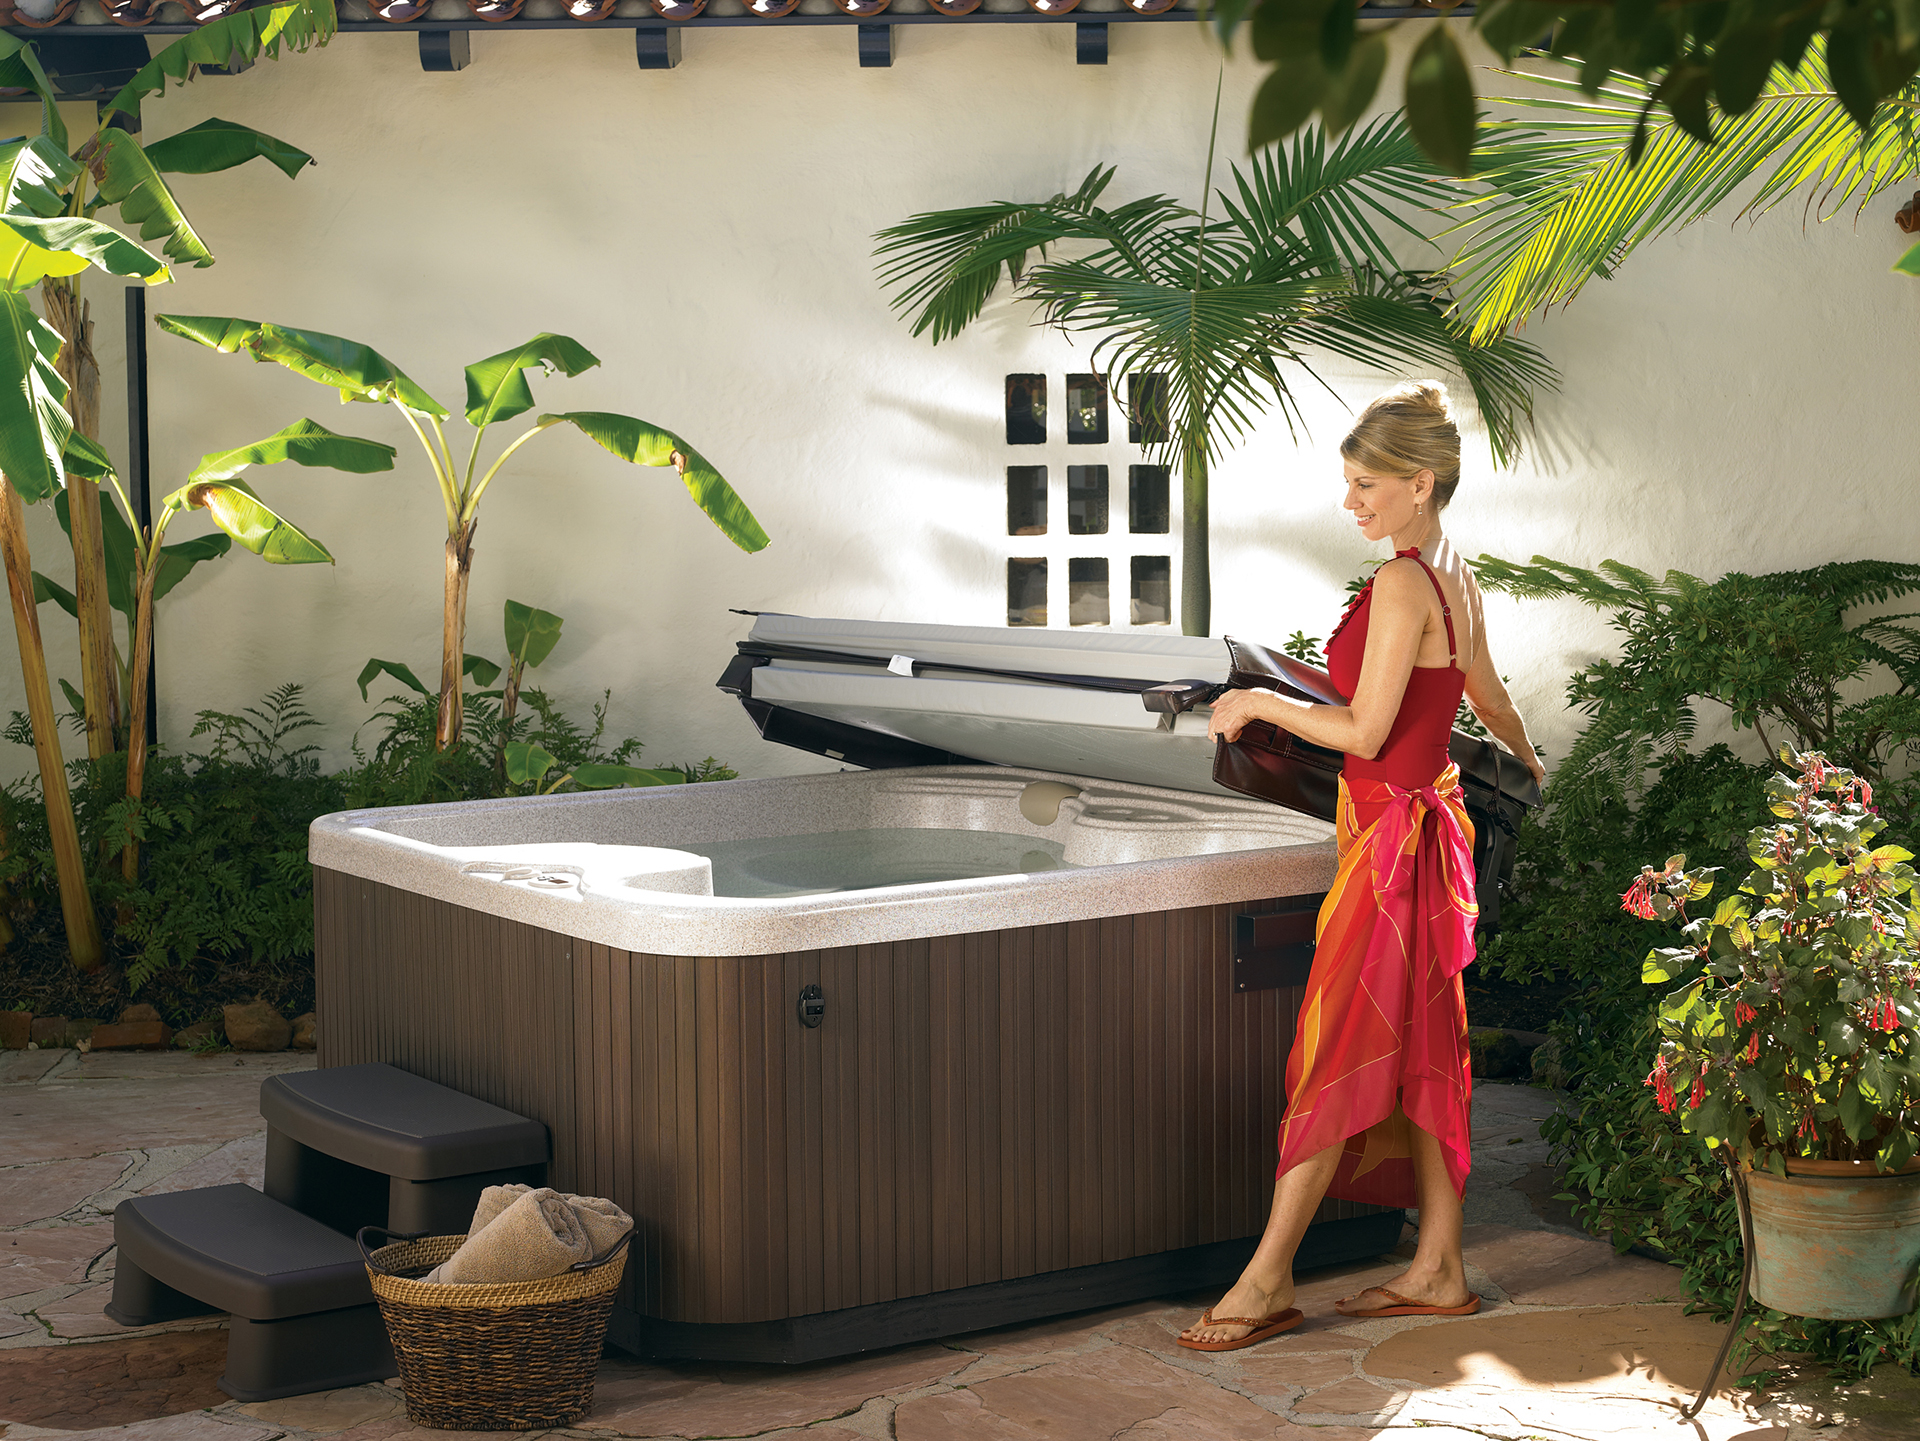 morning spas tub cover tubs youtube to springs watch hot and spring night